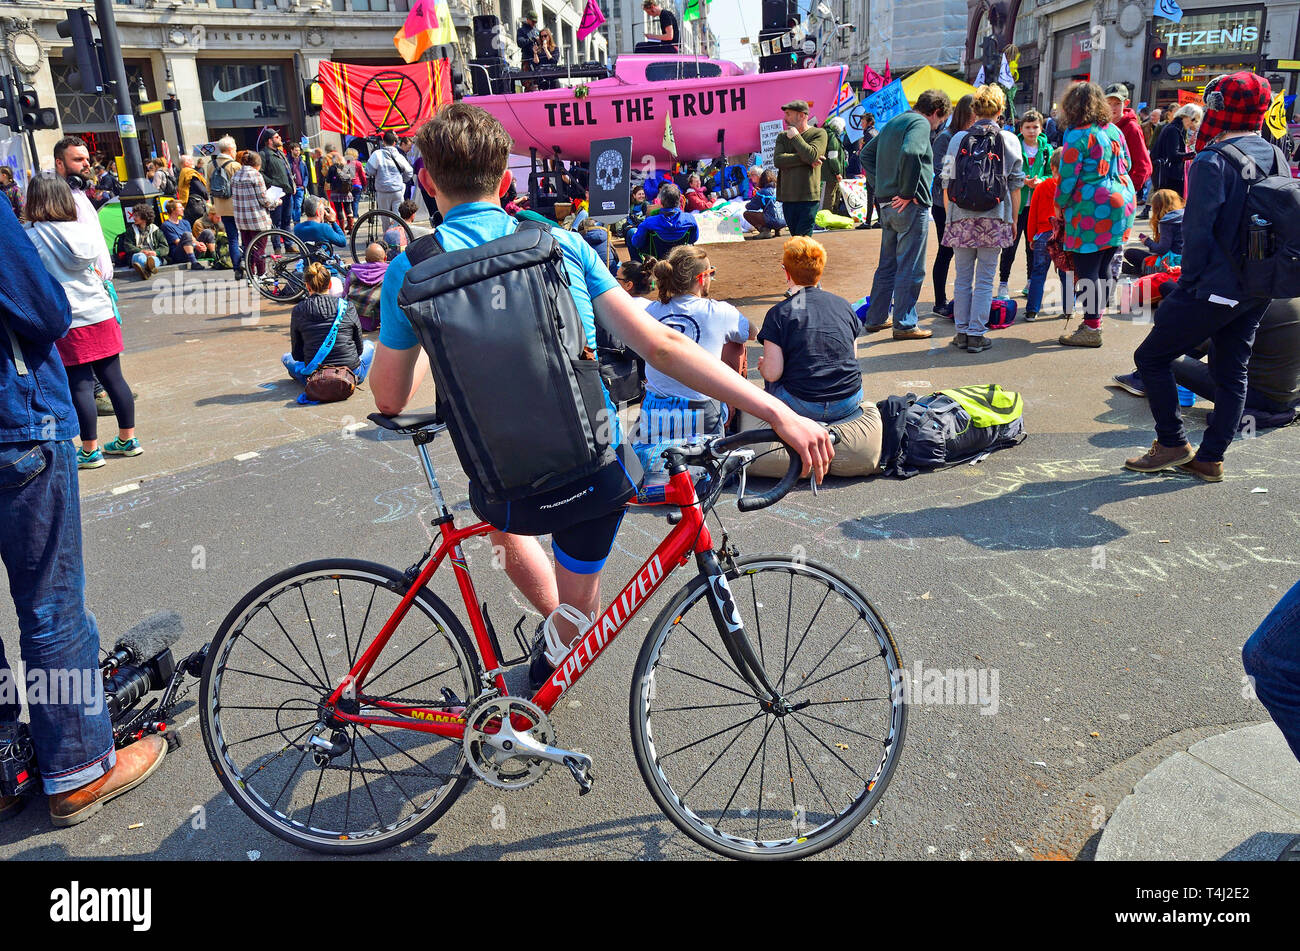 London, UK. 17th April, 2019. Environmental campaign group Extinction Rebellion bring traffic to a standstill in central London for the third day running, camping out in several locations around the city, to demand that the Government take emergency action on the climate and ecological crisis. Oxford Circus. Credit: PjrFoto/Alamy Live News Stock Photo